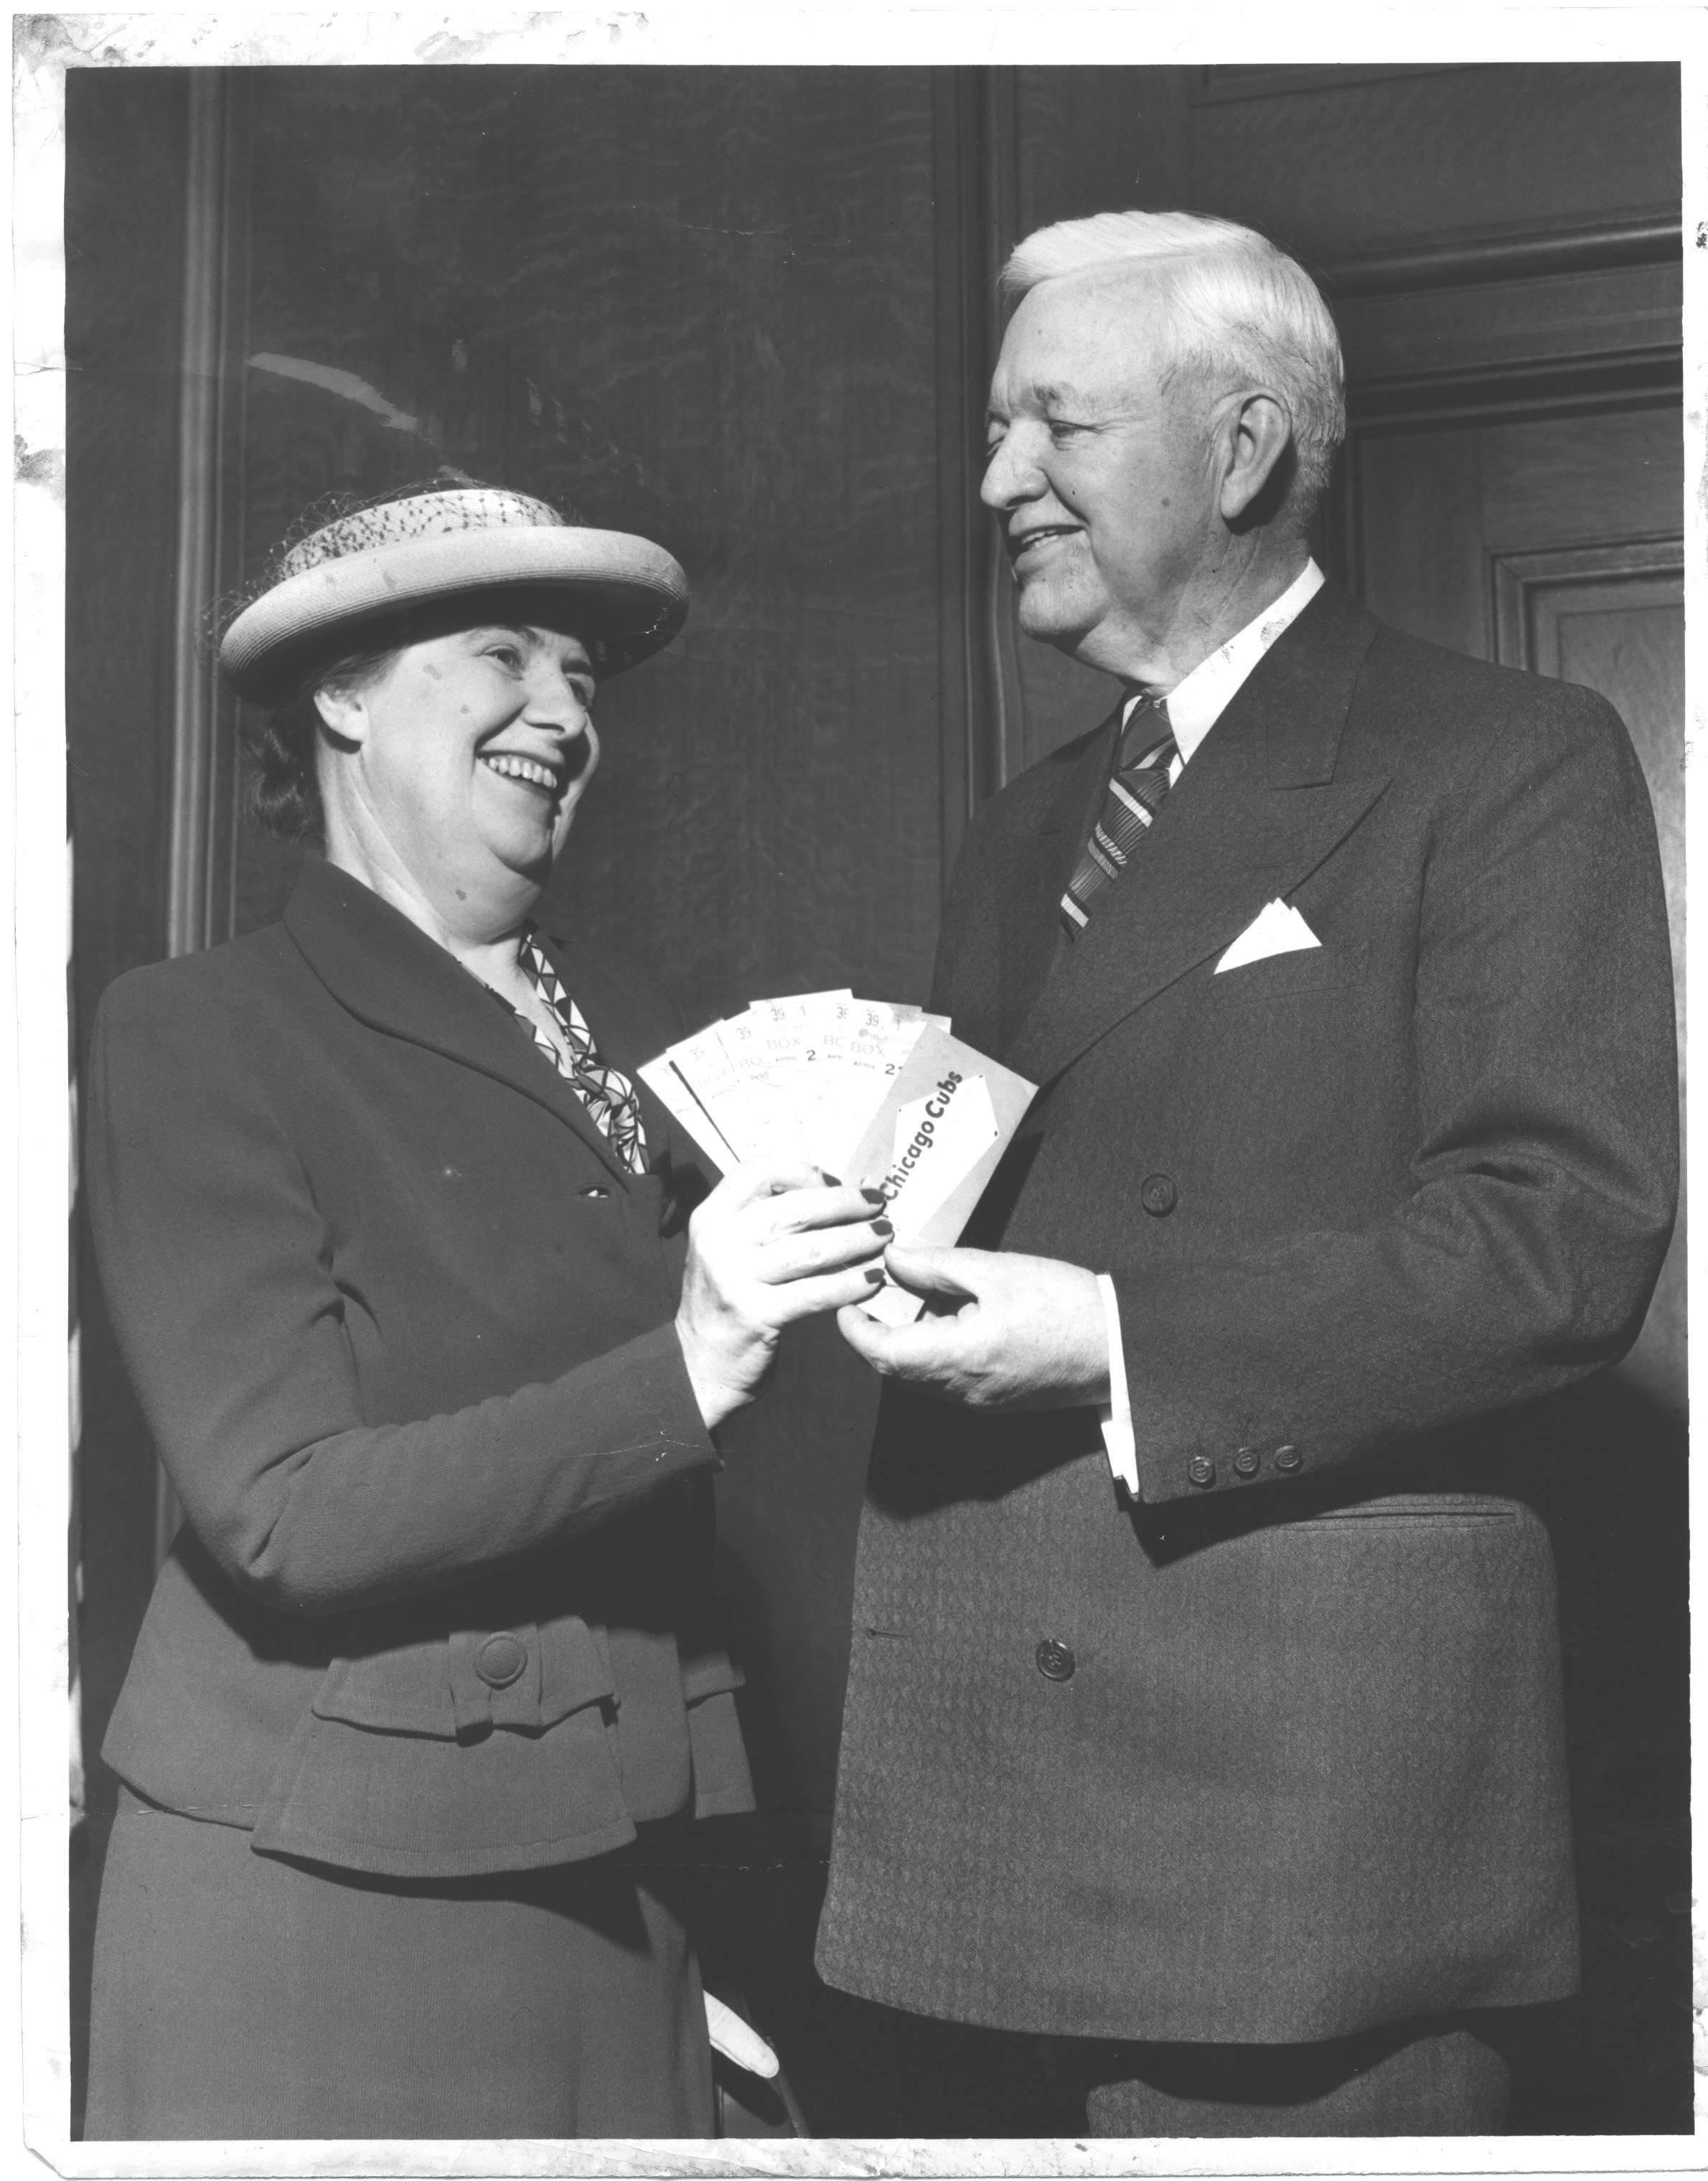 Margaret Donahue is pictured here with Chicago Mayor Martin H. Kennelly in 1950. The Huntley native was a pioneer in the Chicago Cubs organization and is being honored at today's game against the St. Louis Cardinals as part of the 100 years at Wrigley Field celebration.